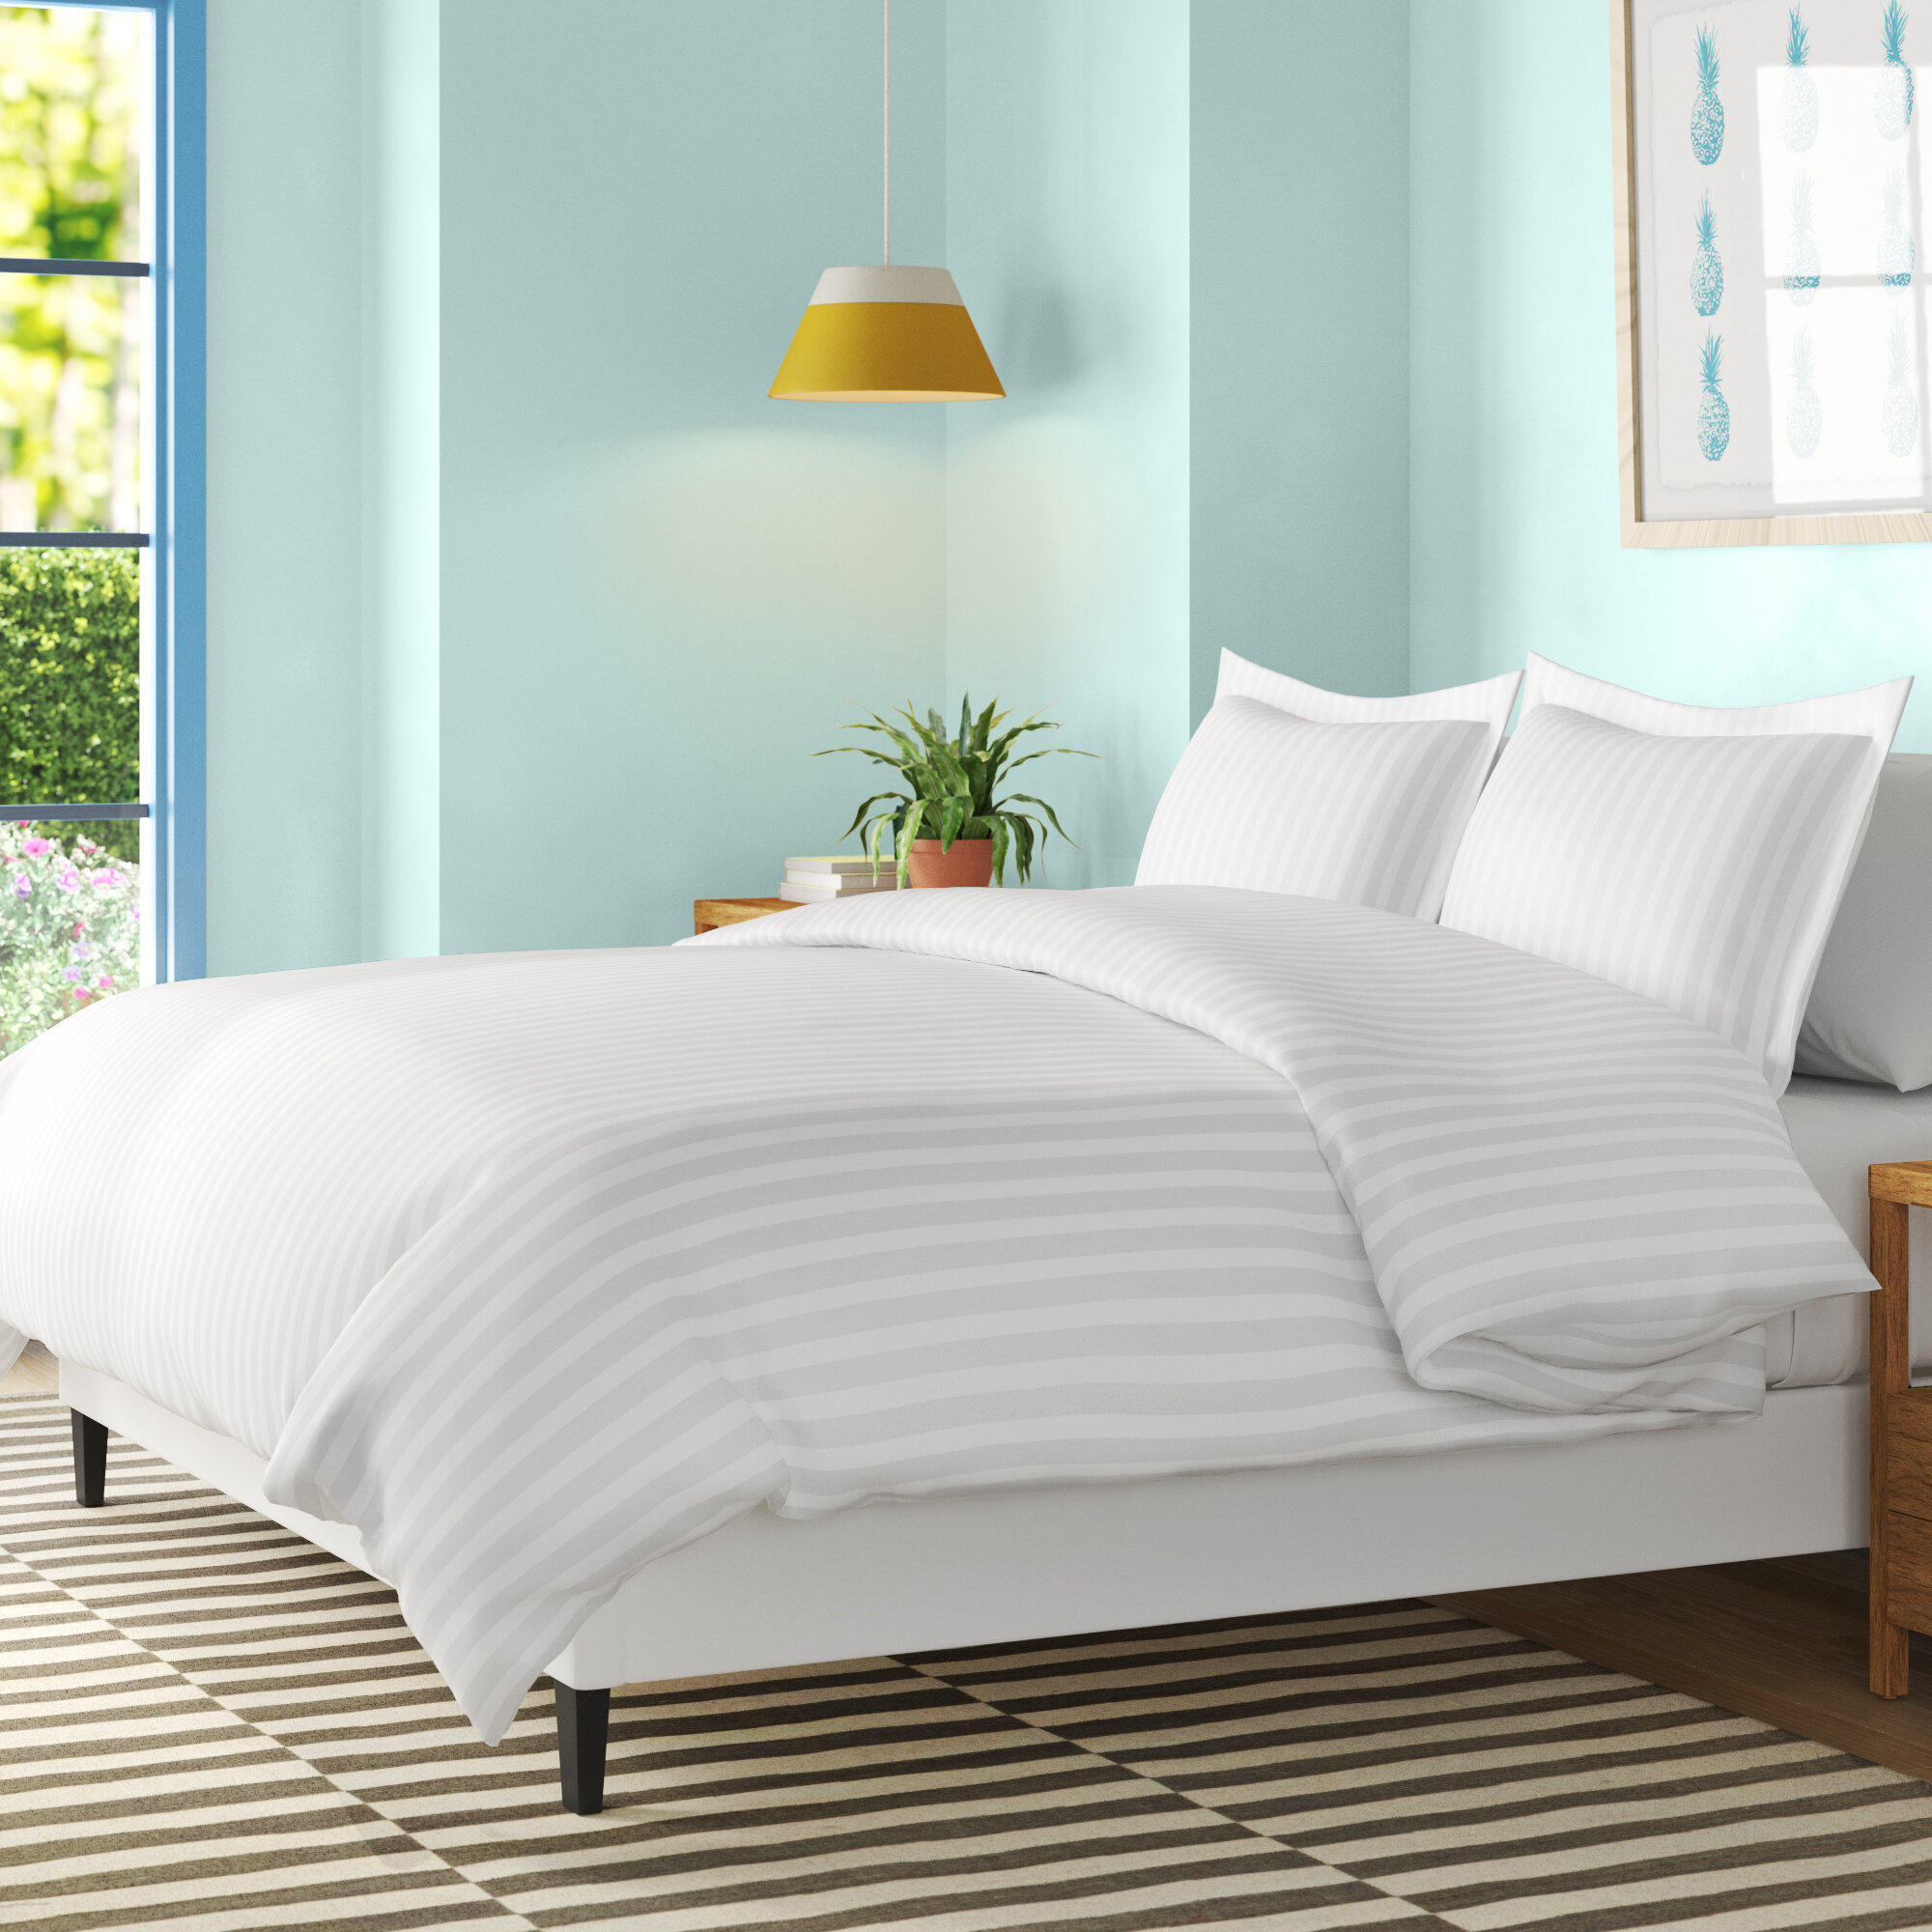 Wayfair Basics Satin Duvet Cover Set